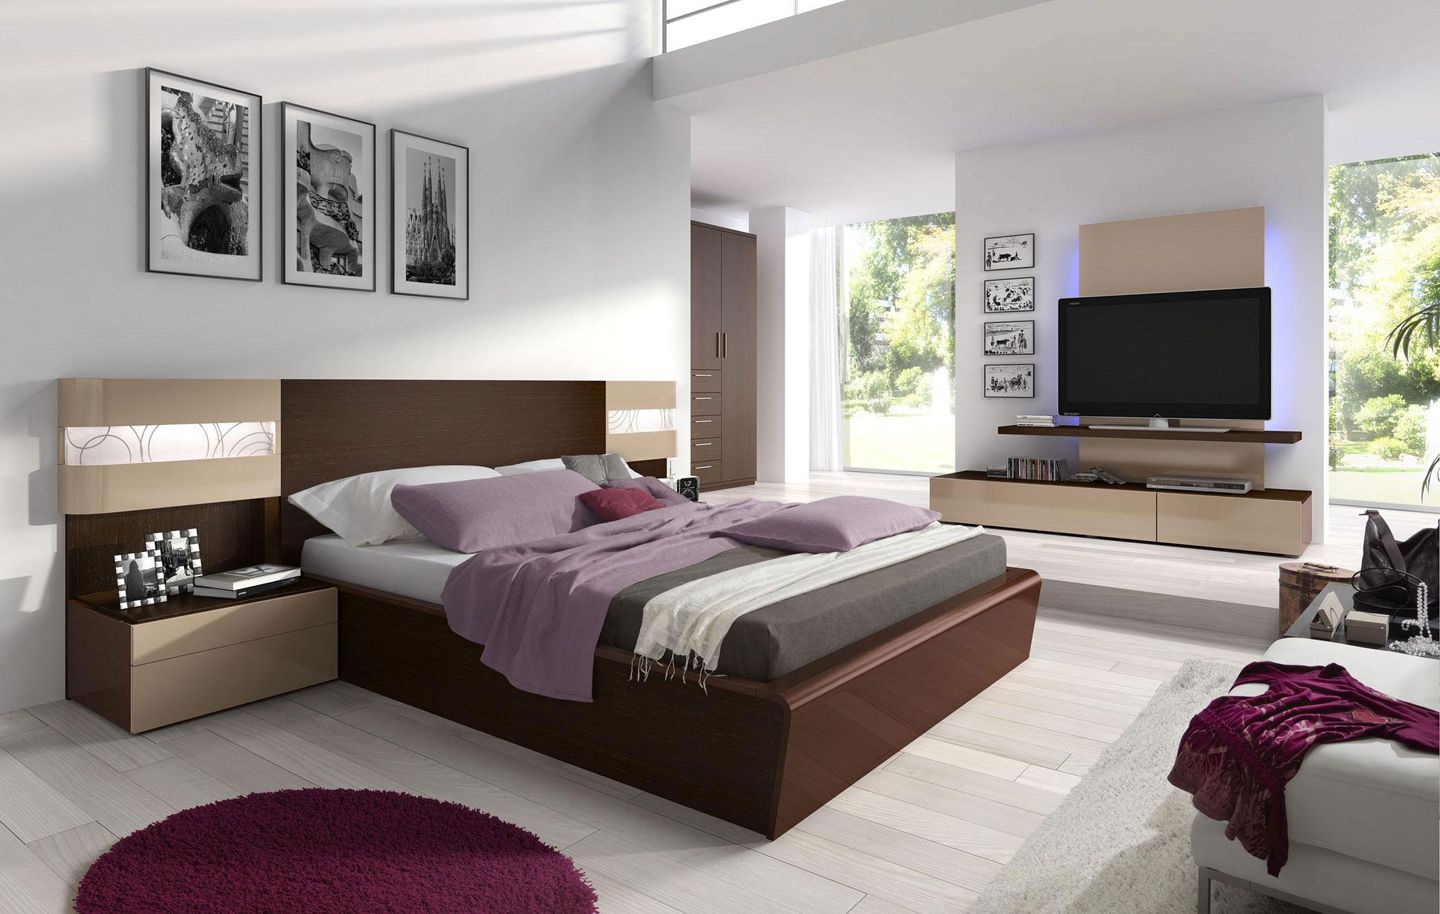 bedrooms good design 5 on bedroom photos - Modern Bedroom Decoration